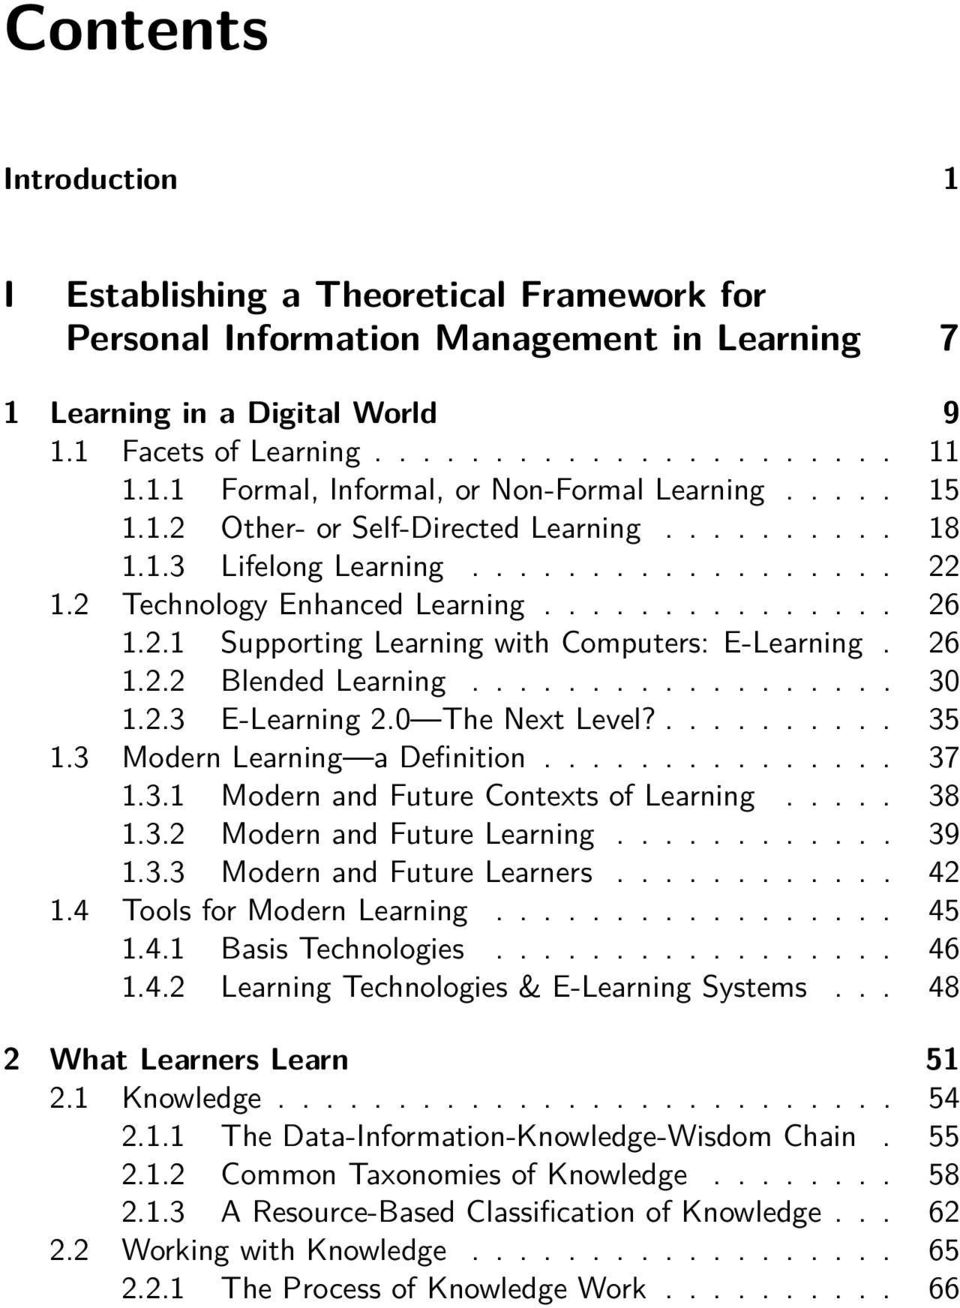 26 1.2.2 Blended Learning.................. 30 1.2.3 E-Learning 2.0 The Next Level?.......... 35 1.3 Modern Learning a Definition............... 37 1.3.1 Modern and Future Contexts of Learning..... 38 1.